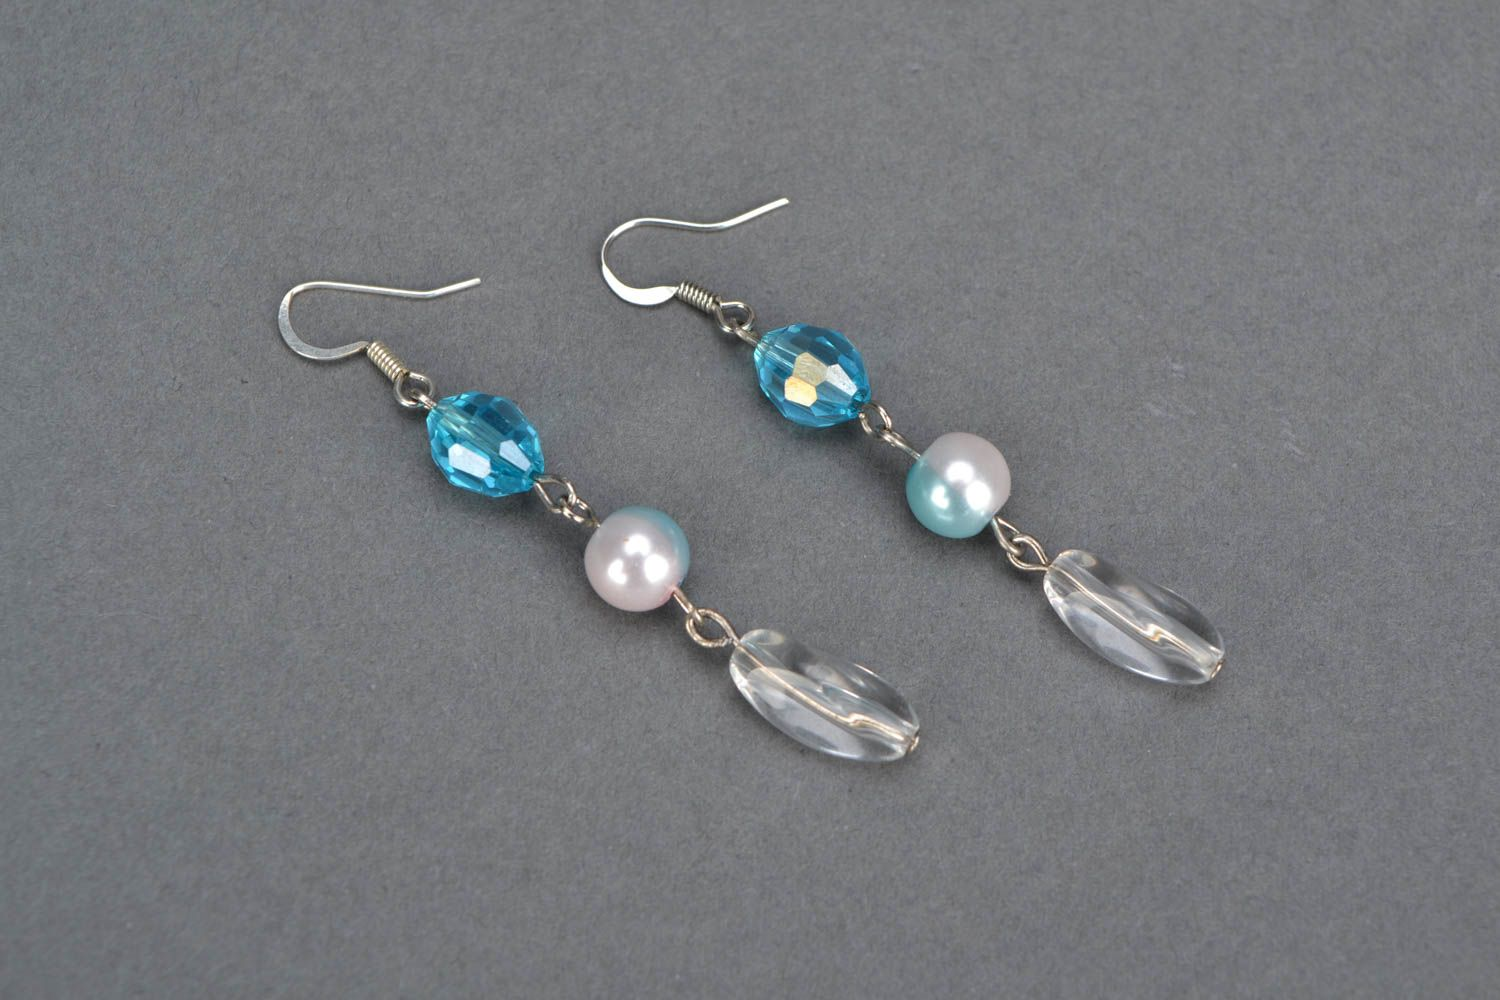 Homemade earrings with beads photo 3